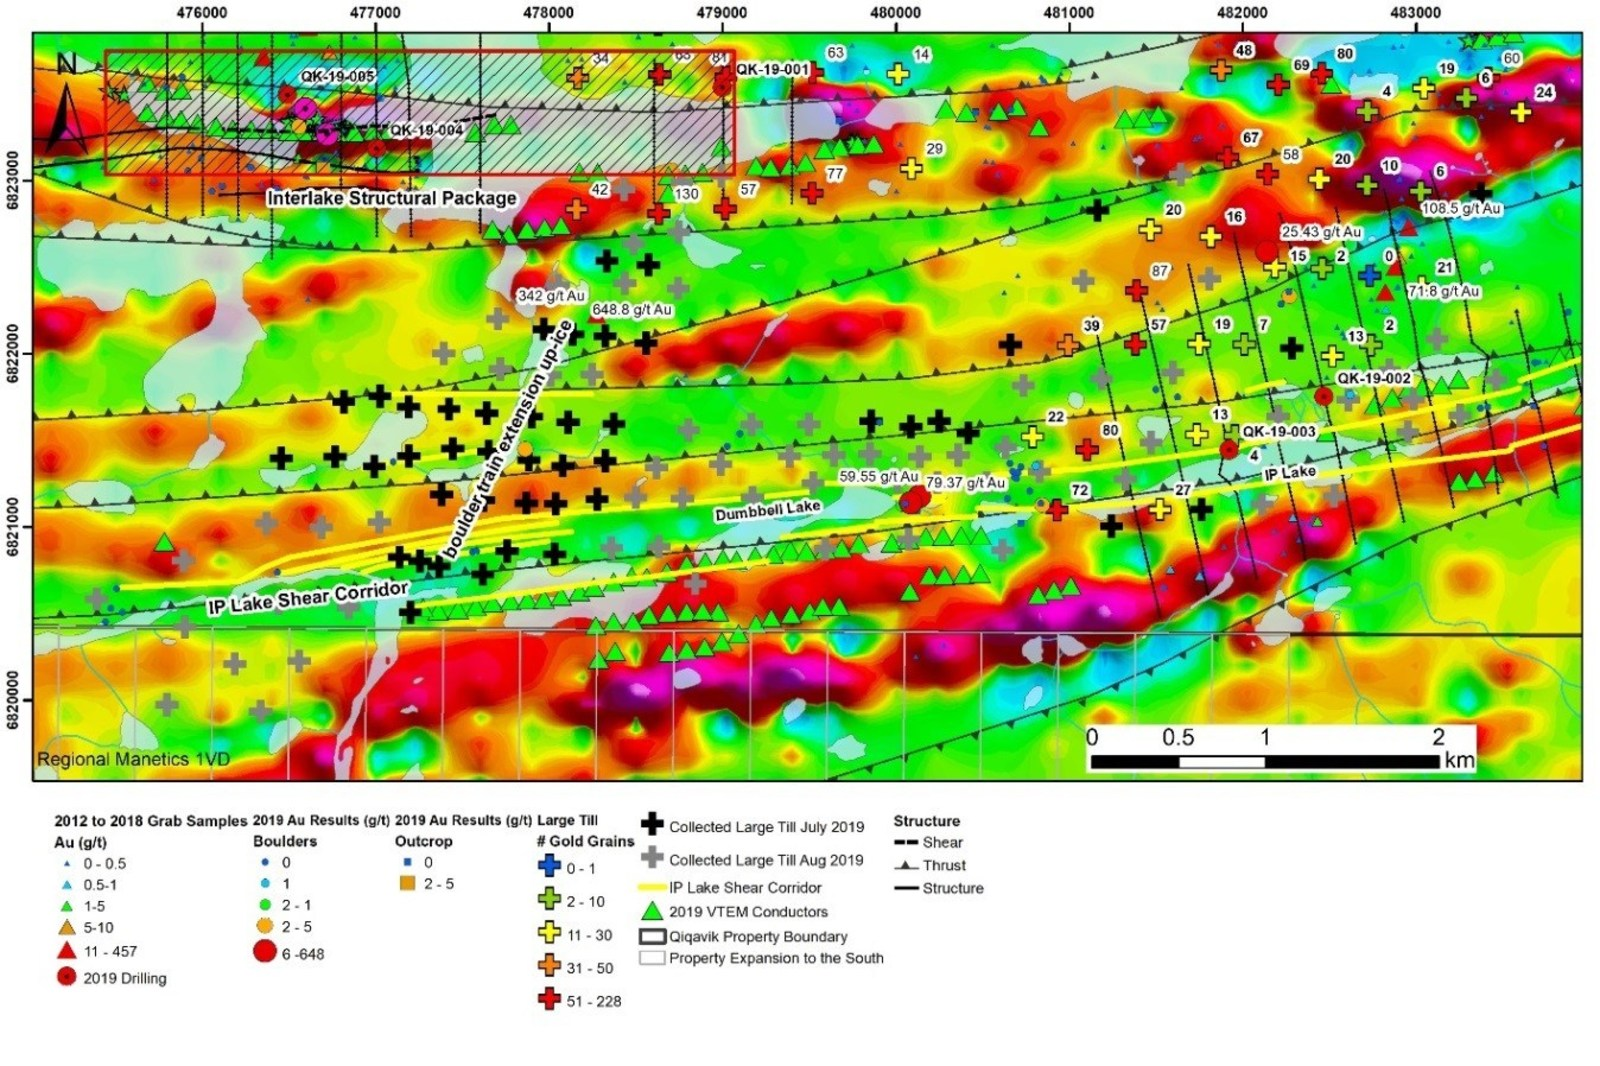 Figure 2: Interlake Structural Package and IP Lake Shear Corridor. Ice direction is SW to NE